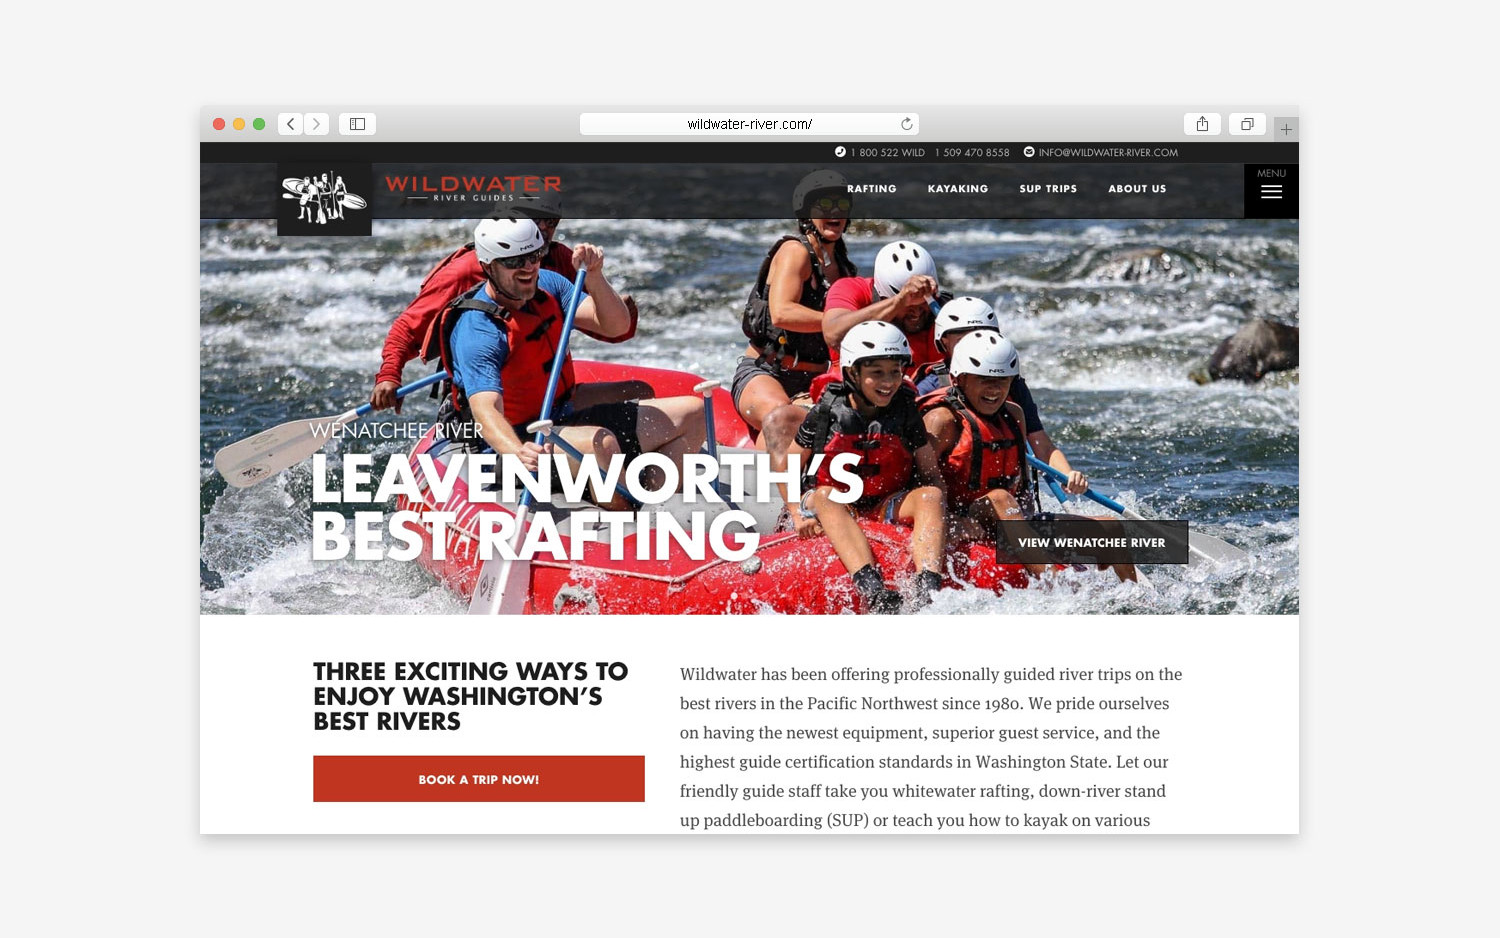 Wildwater River website - desktop view